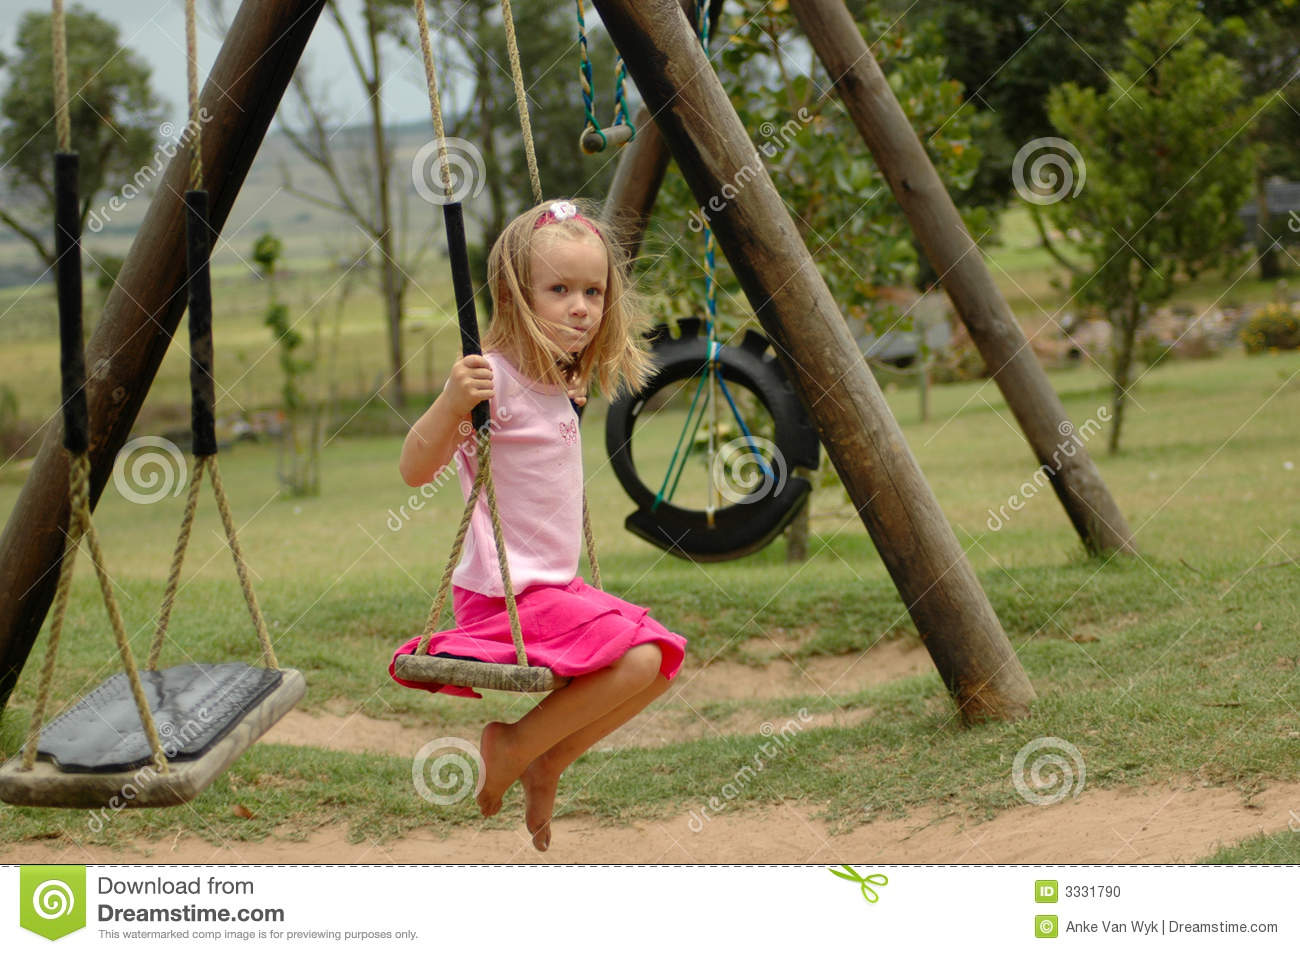 Opinion swinging at the playground